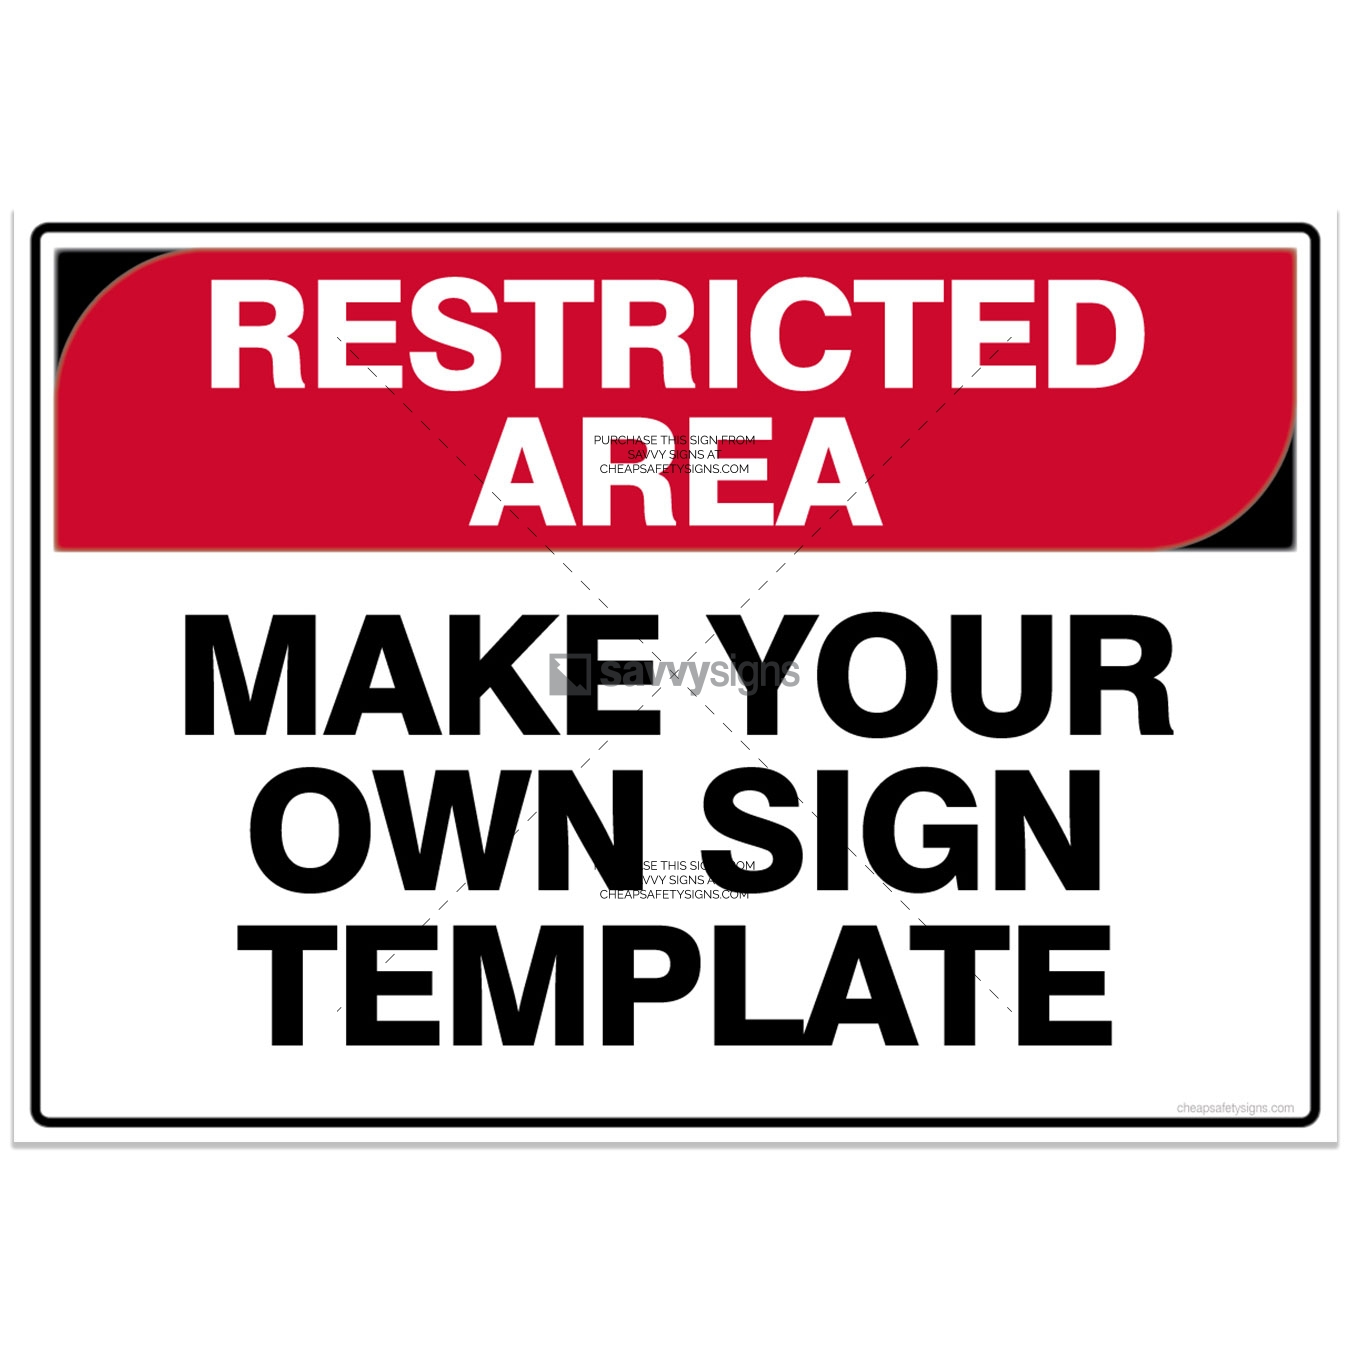 SSRES3001-RESTRICTED-AREA-Workplace-Safety-Signs_Savvy-Signs_v2